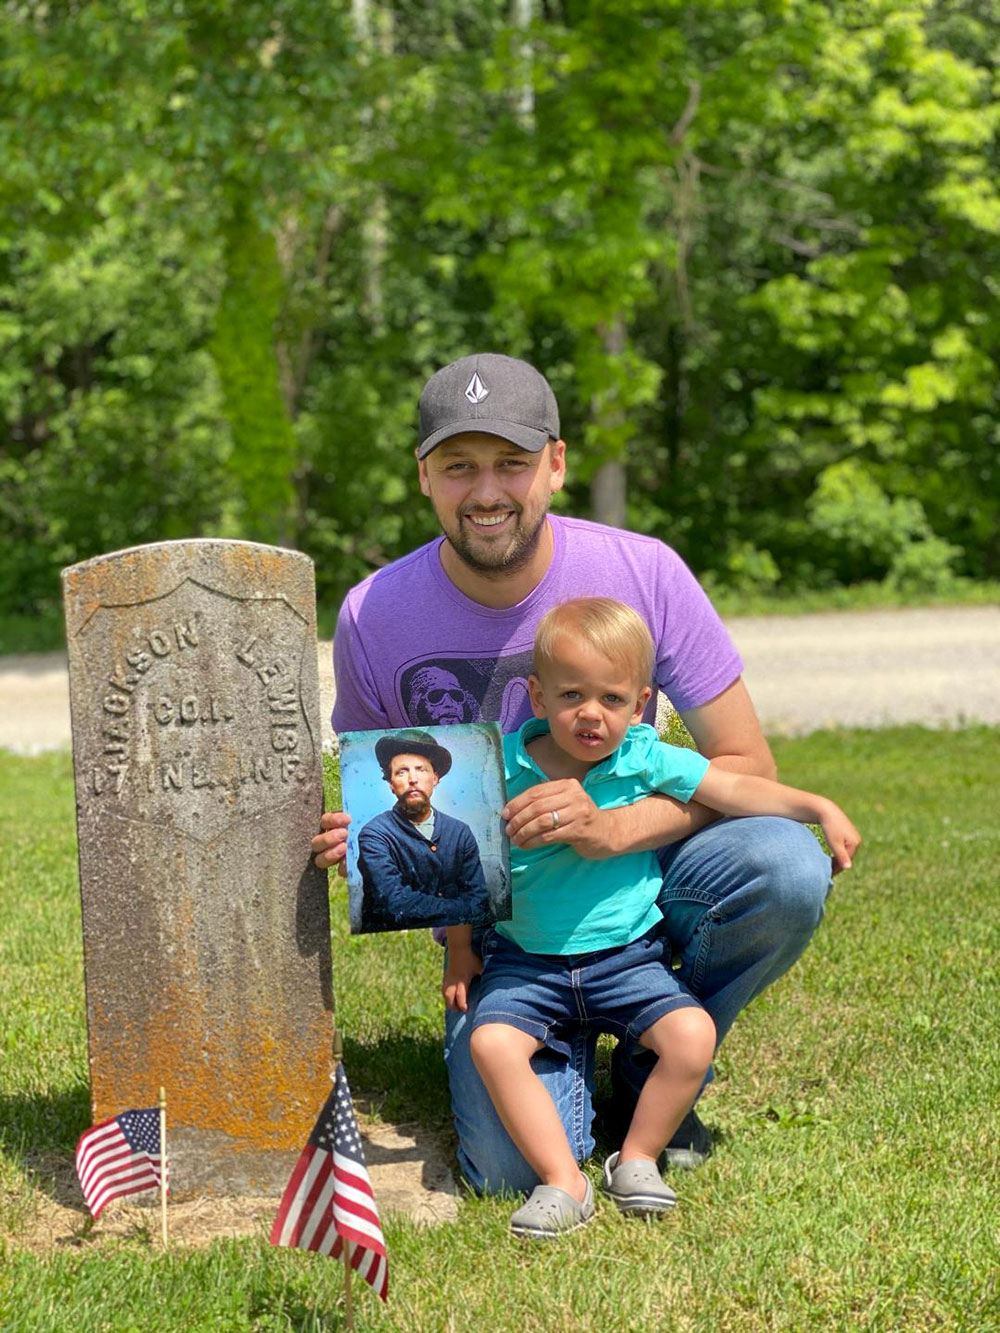 Jed Brian, with his son in tow, visits the grave of Andrew Jackson Lewis (1836-1884) in Little Zion Cemetery in Pike County, Ind. Lewis, who served in the ranks of Company I, 17th Indiana Infantry, is Jed's great-grandfather. Jed holds a colorized restoration of an original tintype.